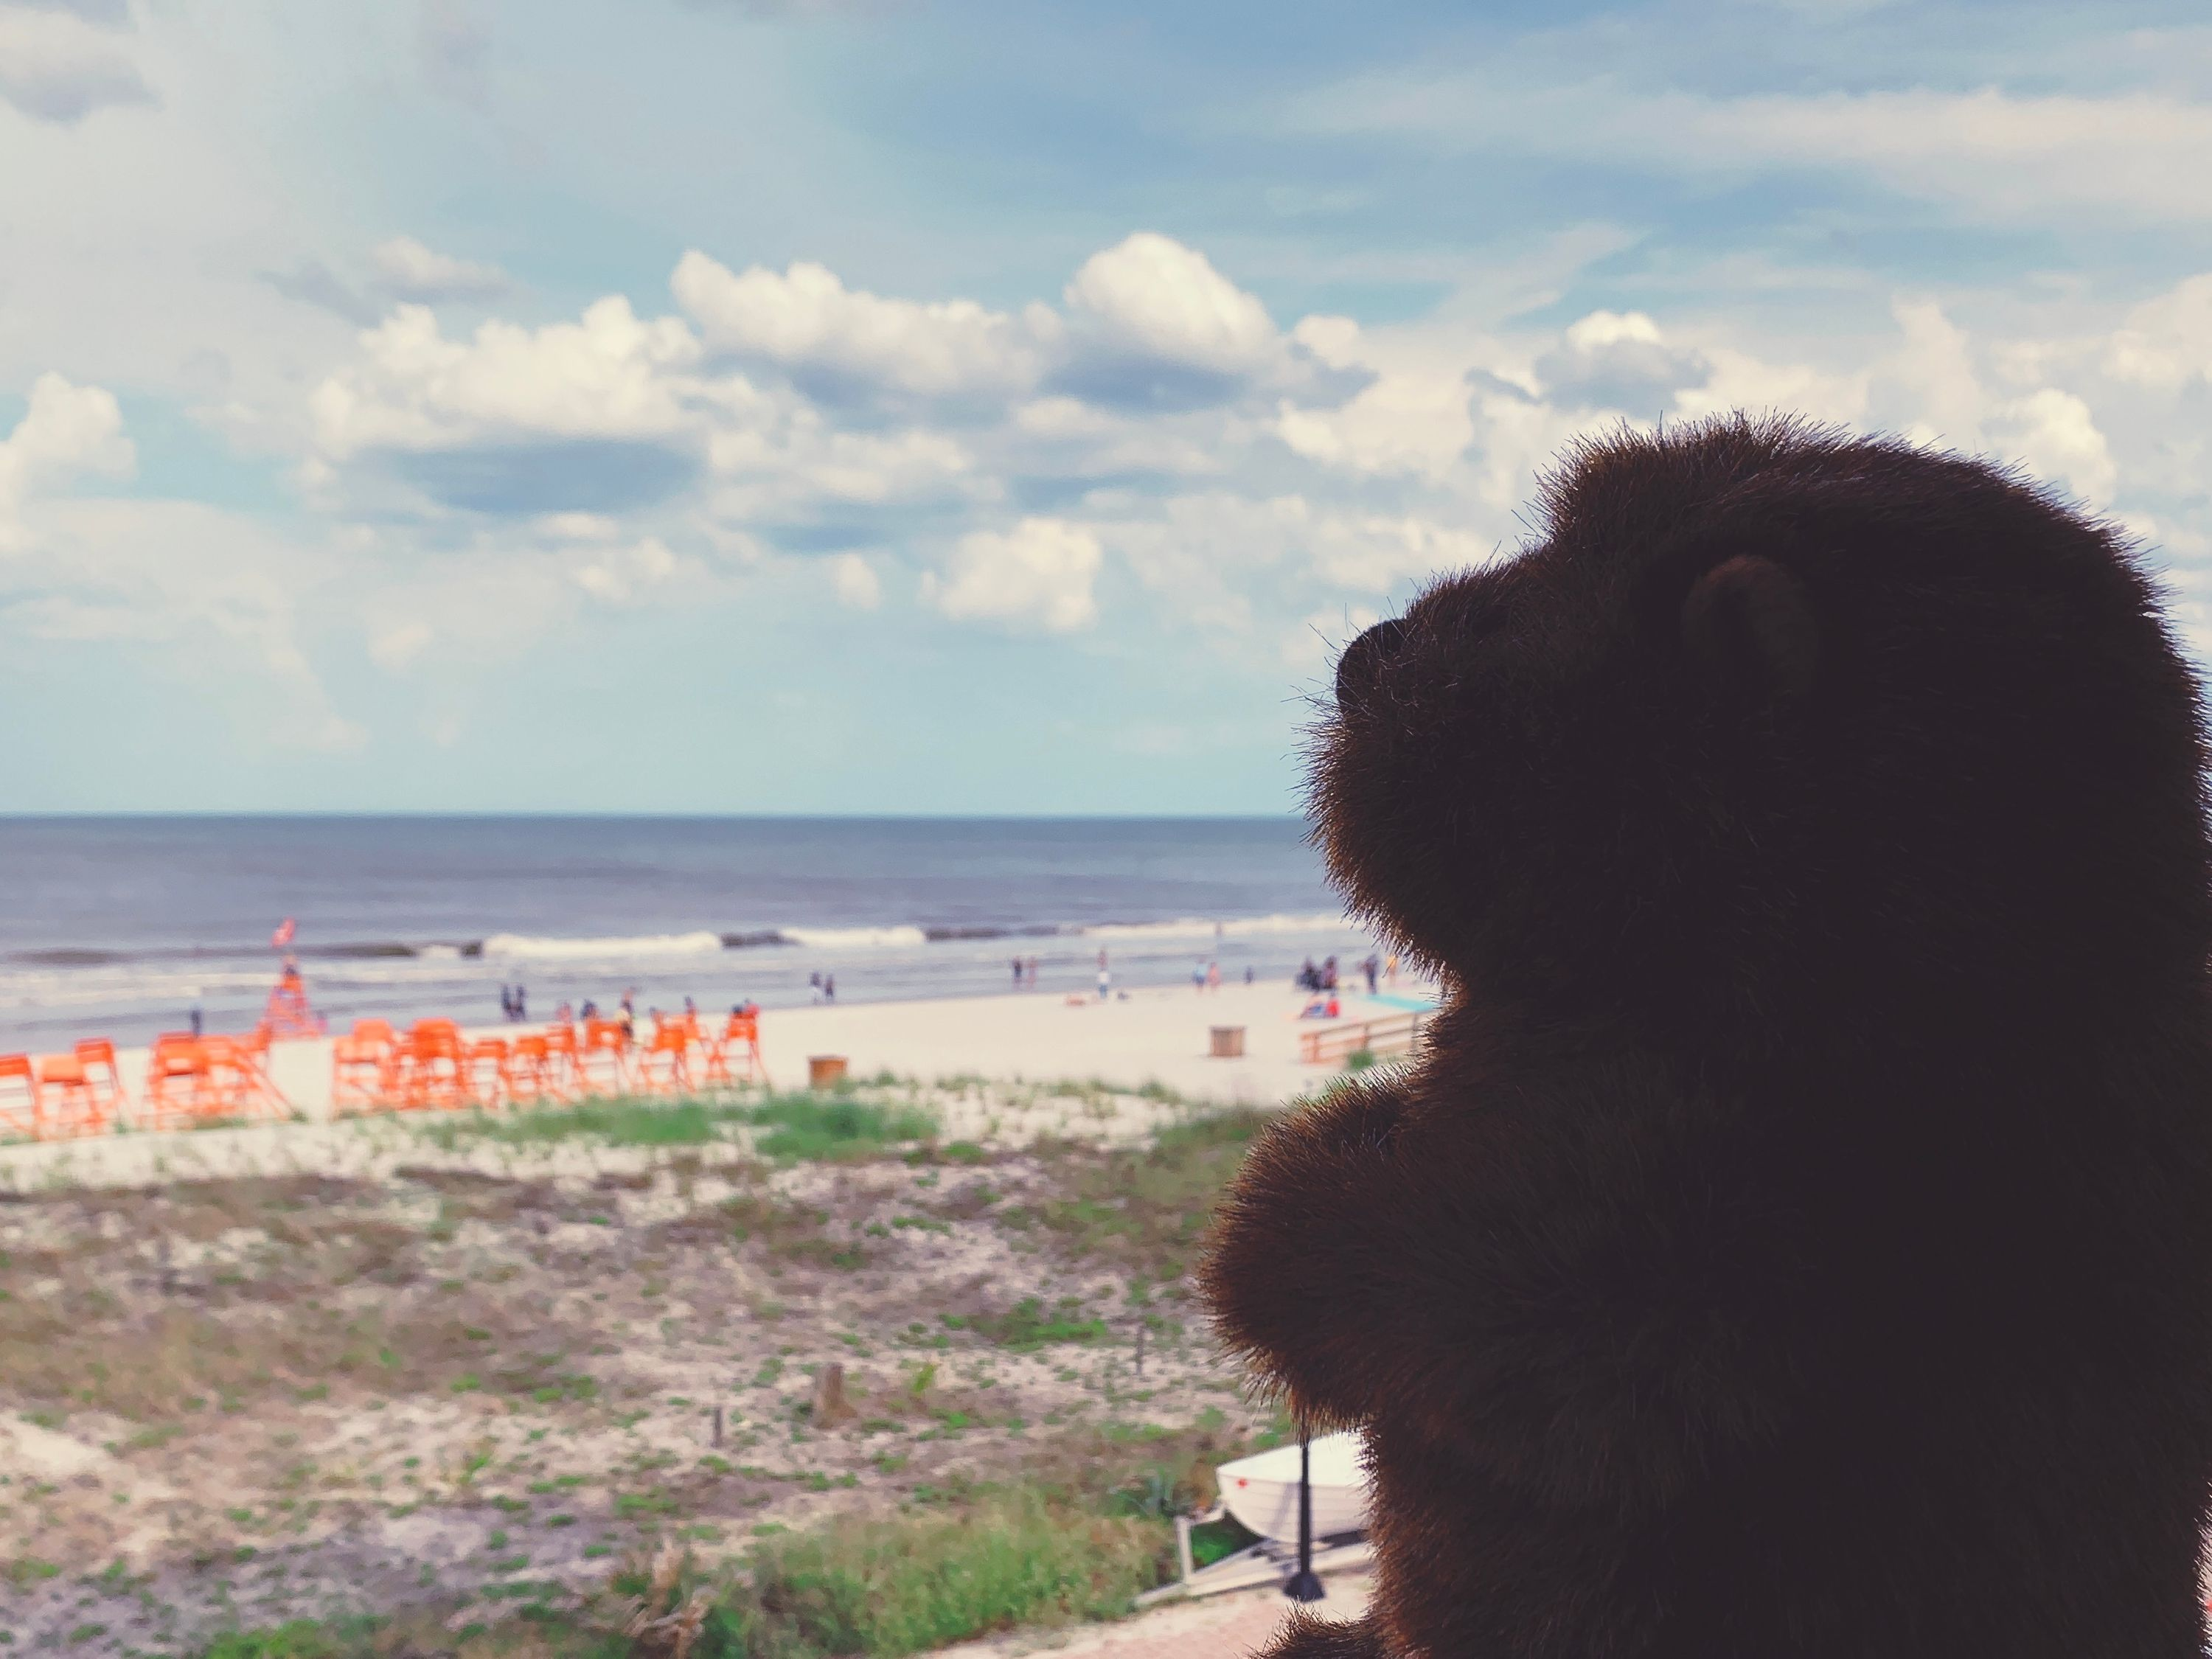 The Groundhog watches the beach from a balcony.